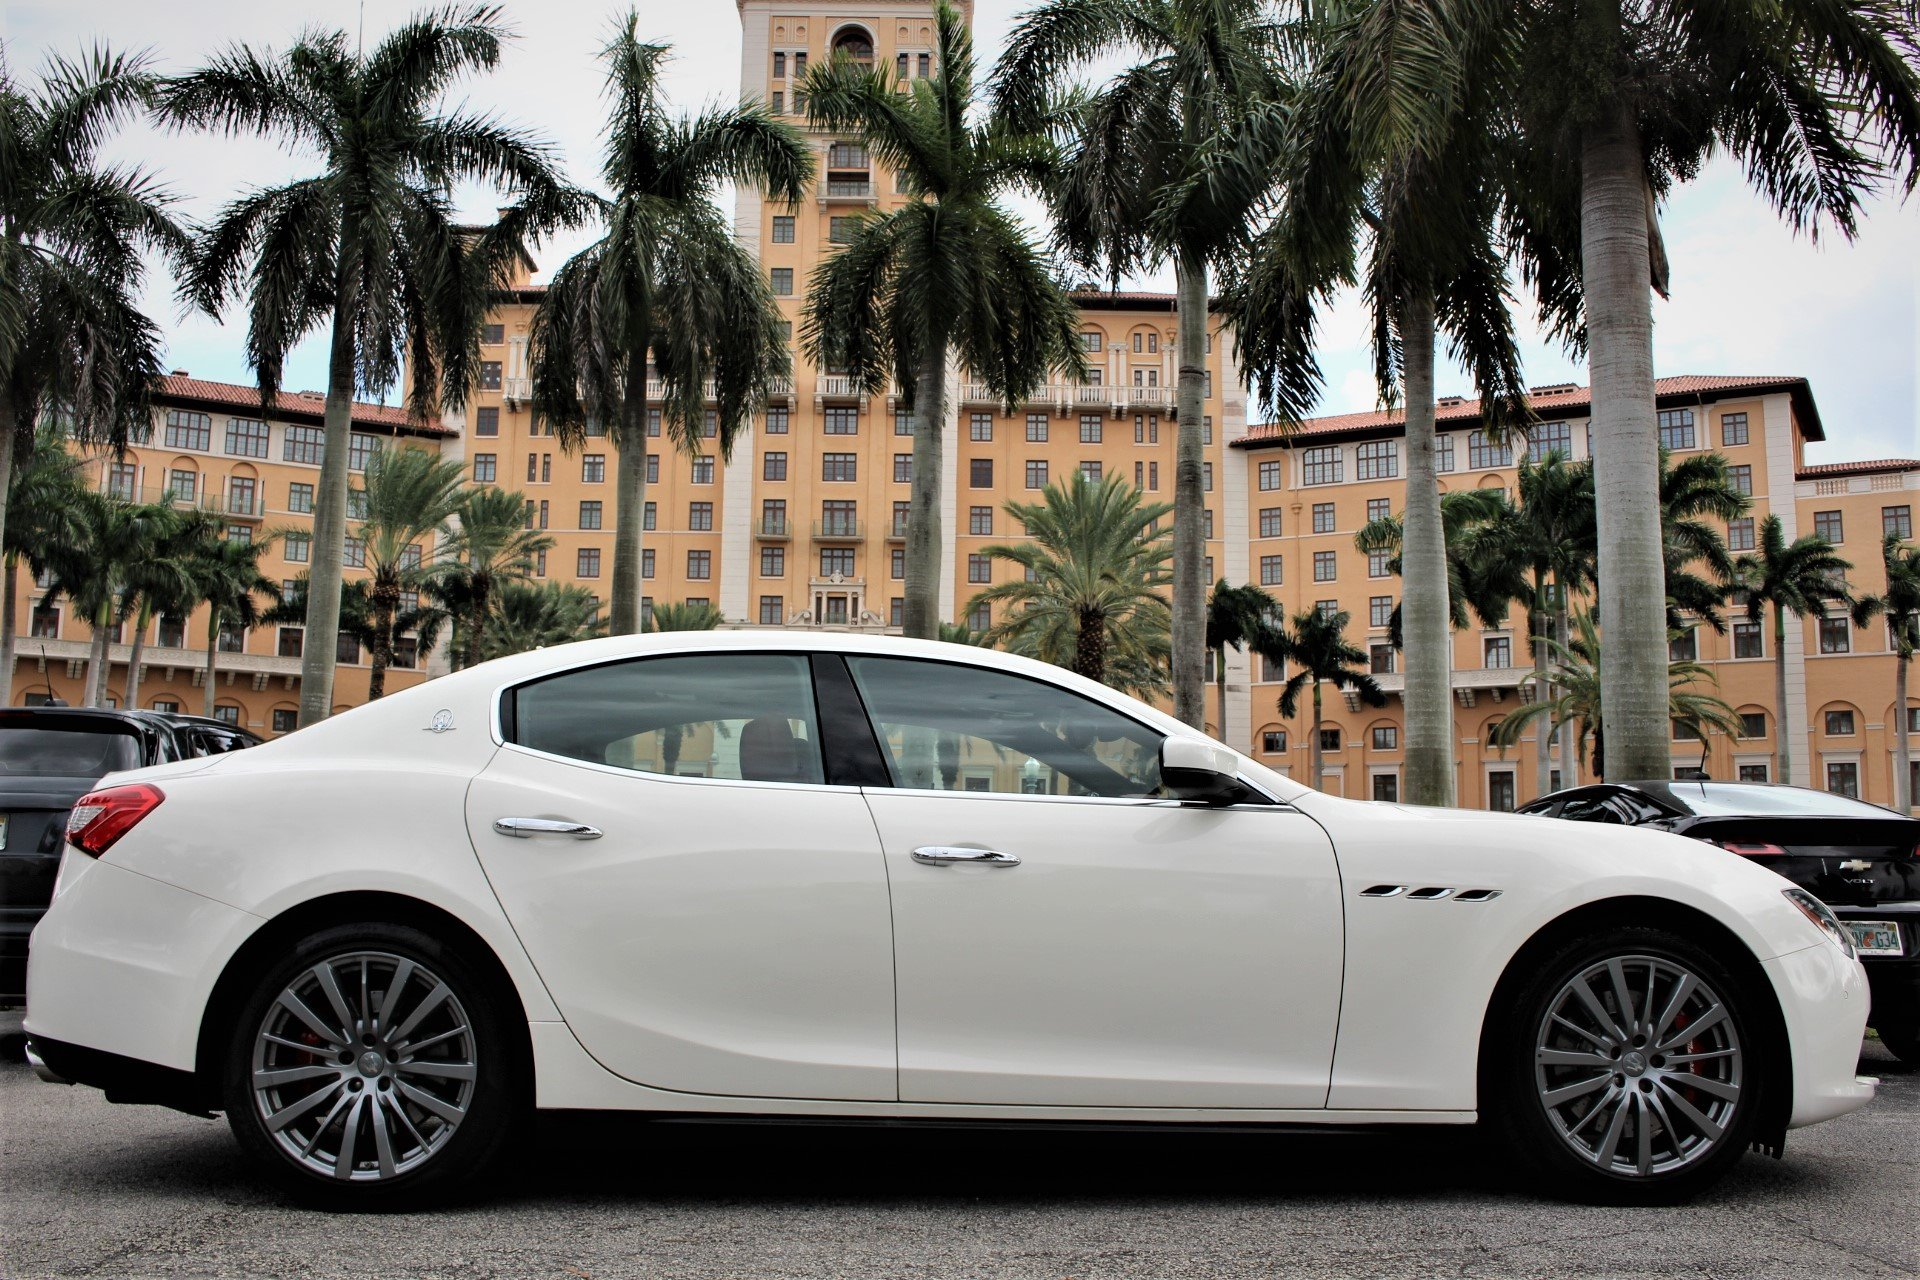 Used 2017 Maserati Ghibli S Q4 for sale Sold at The Gables Sports Cars in Miami FL 33146 1